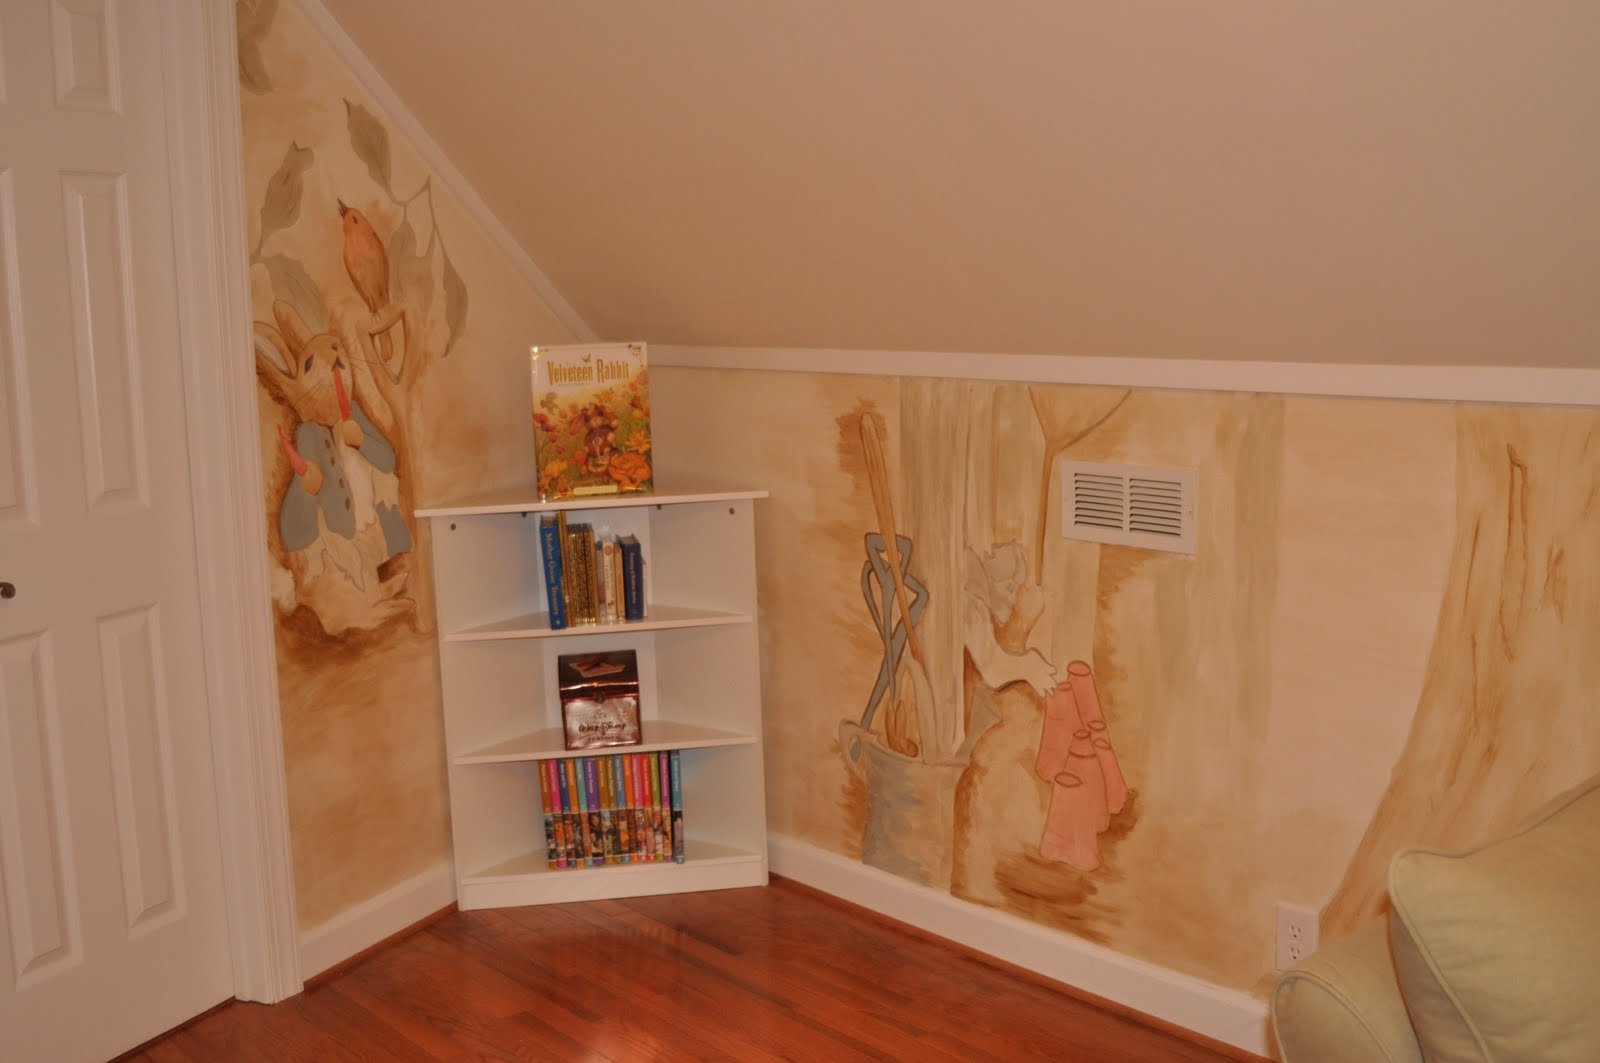 ... Peter Rabbit Mural Playroom ... Part 30